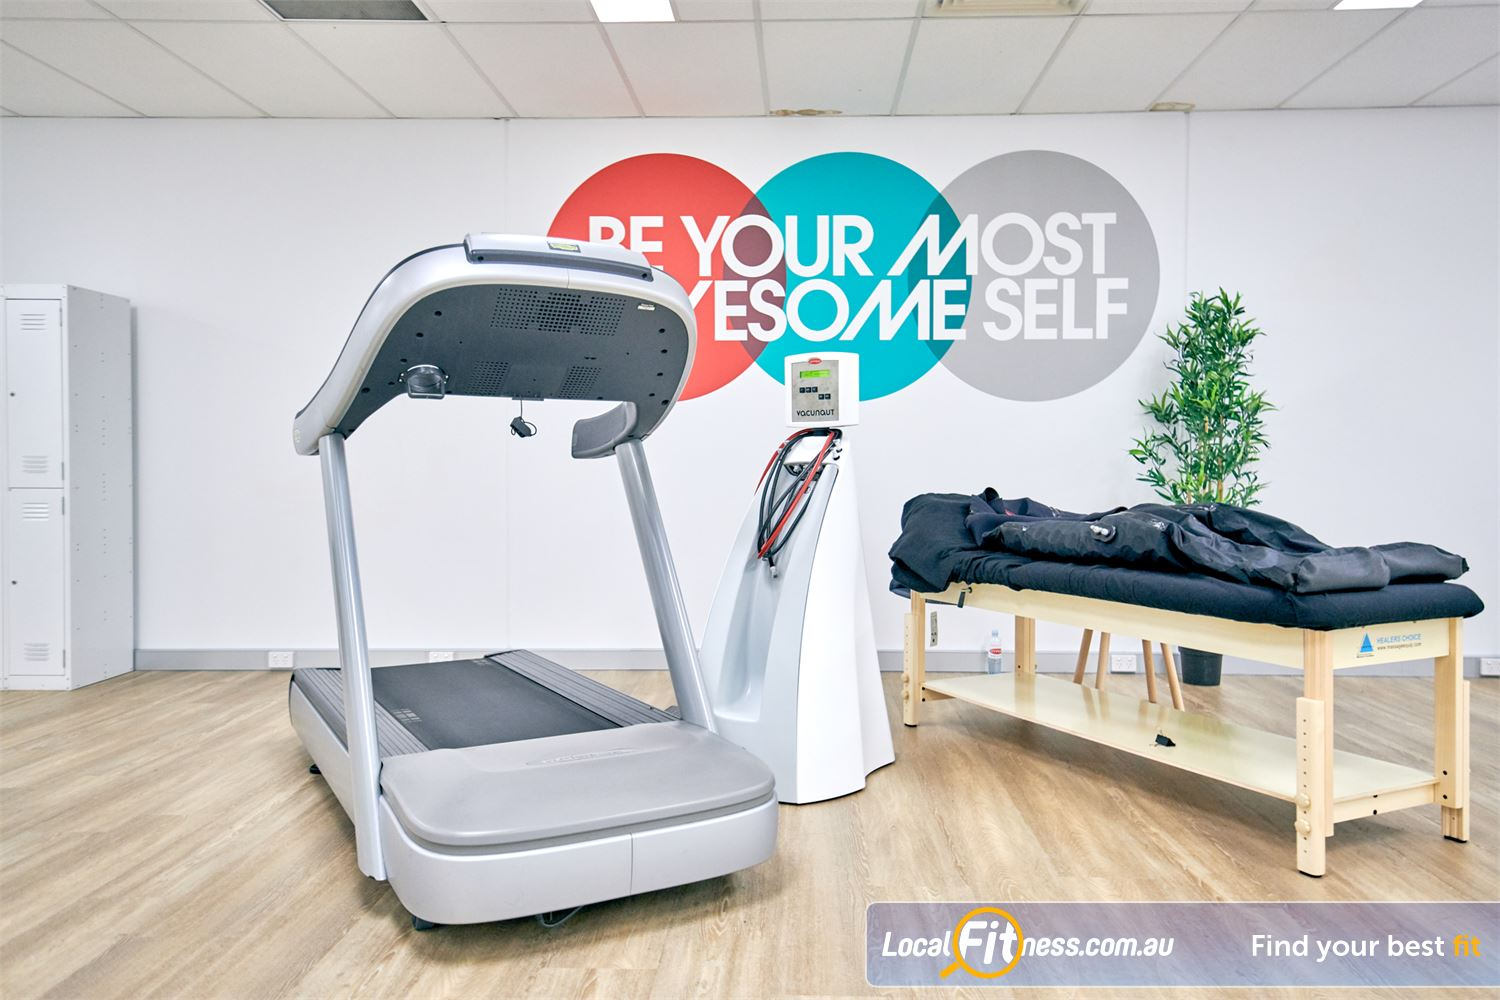 HYPOXI Weight Loss Near Beaumaris HYPOXI Cheltenham is great for men looking to lose those love handles.